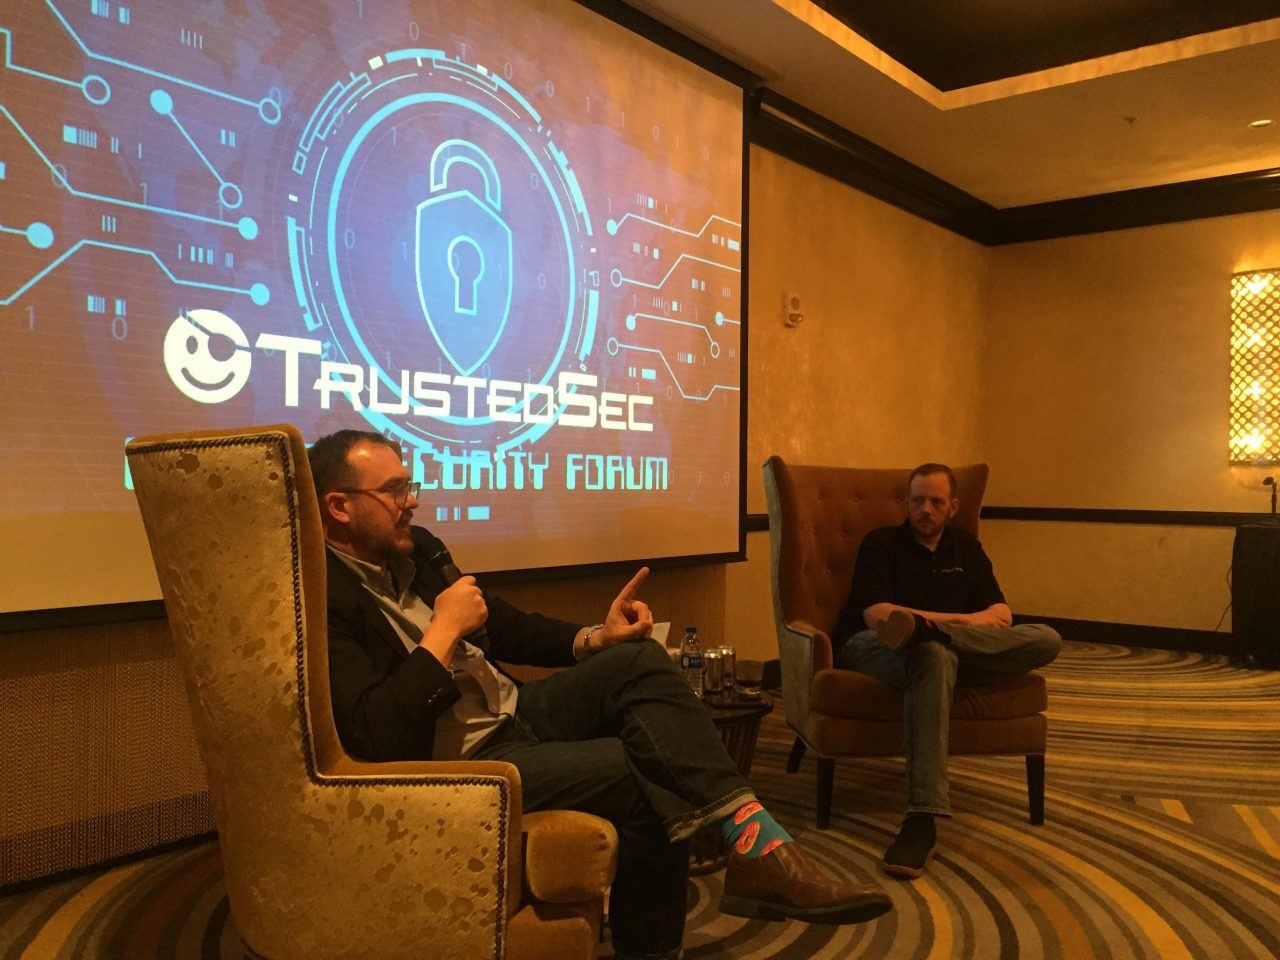 TrustedSec Security Forum speaking engagement